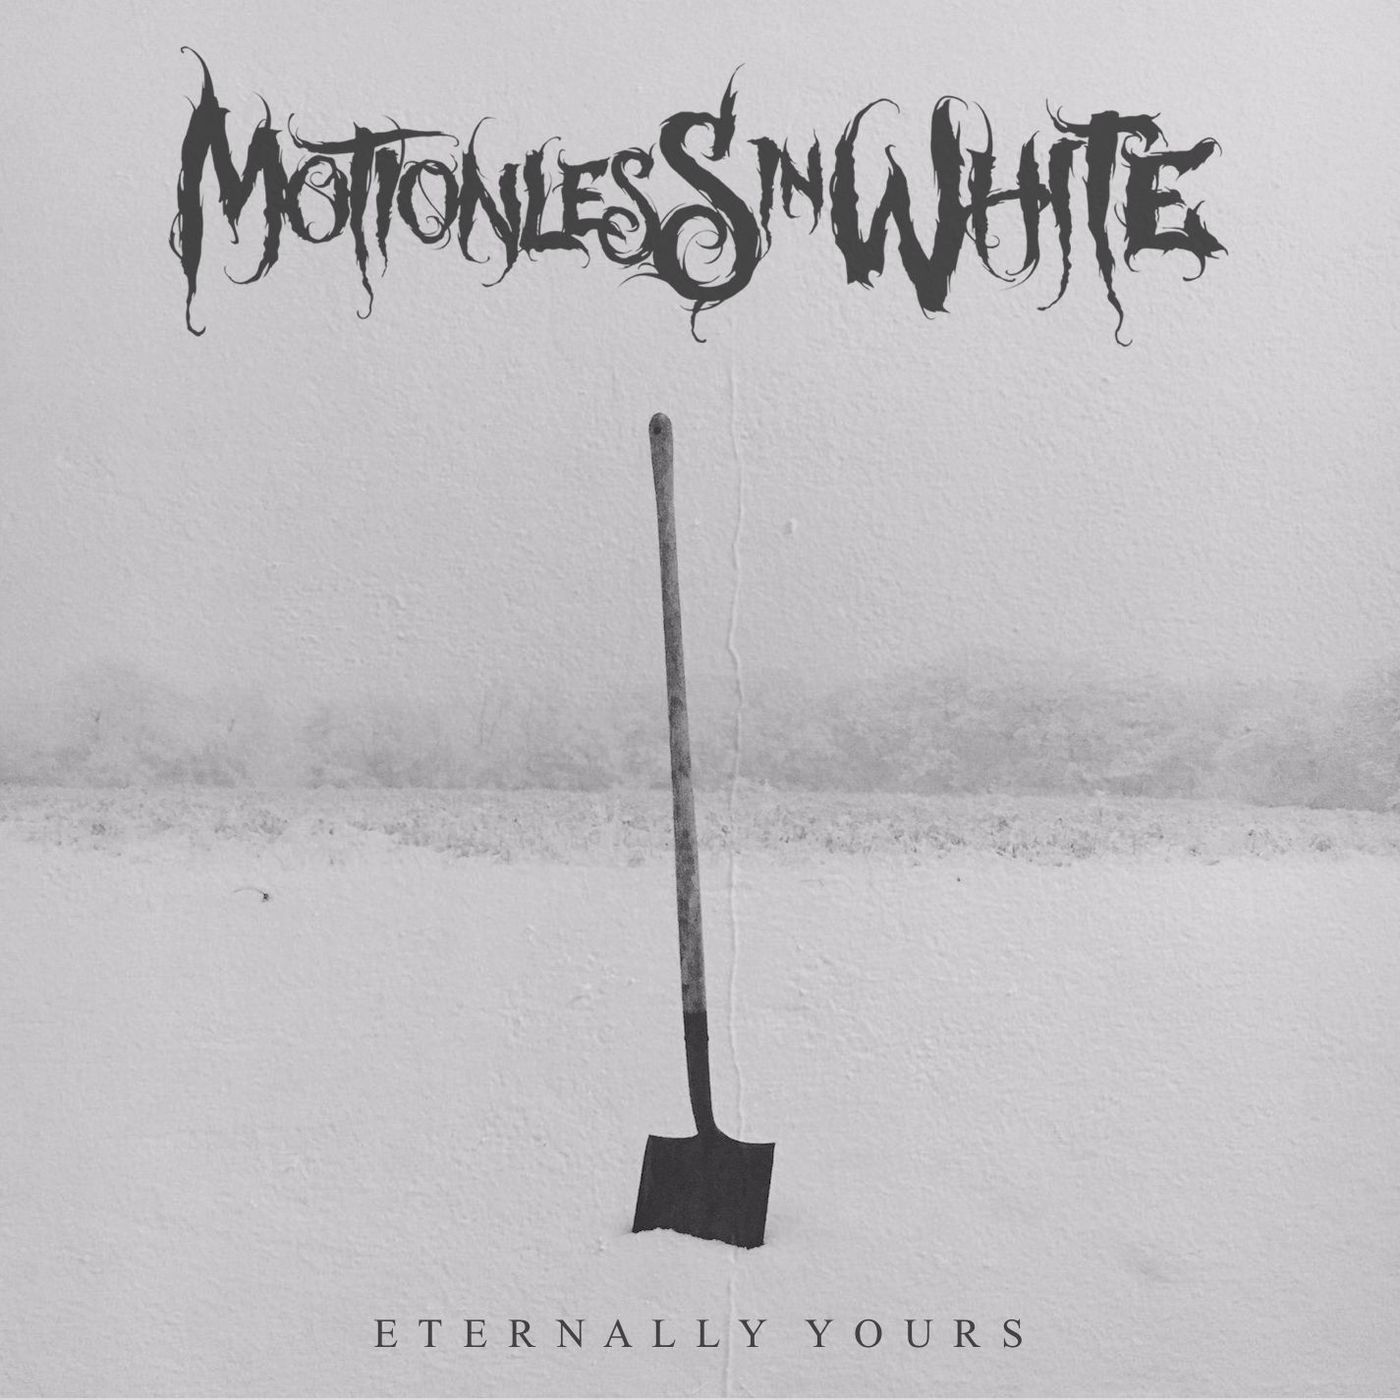 Motionless In White - Eternally Yours [single] (2017)